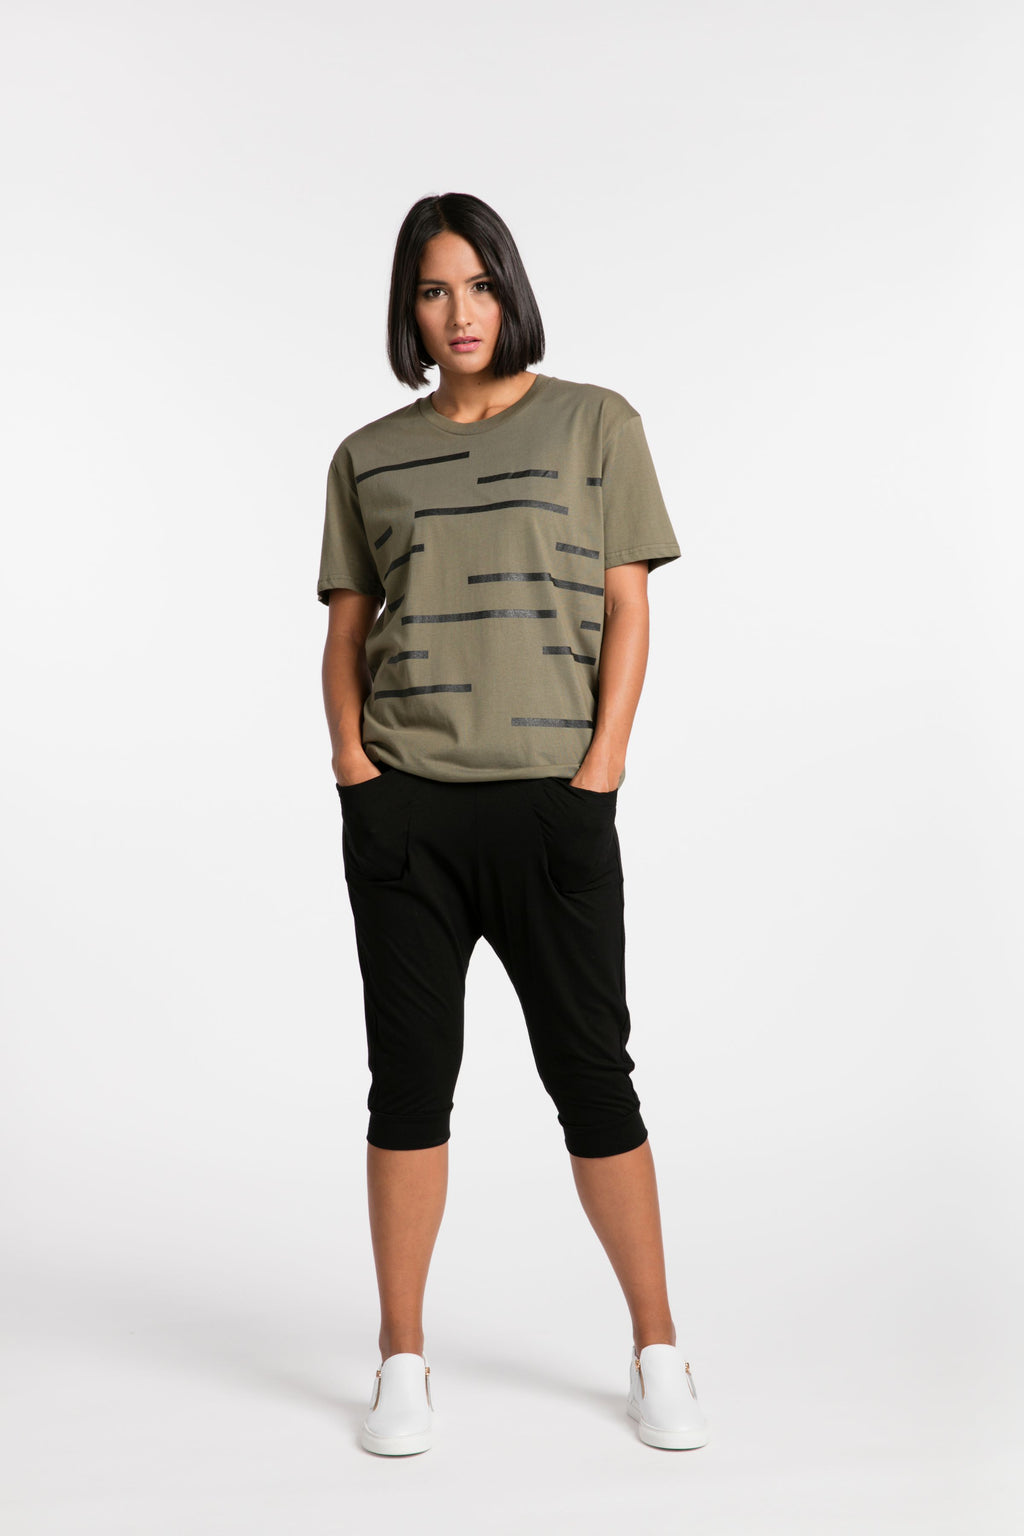 STYLEXLAB Crossing The Lines Tee 243 Olive/Black